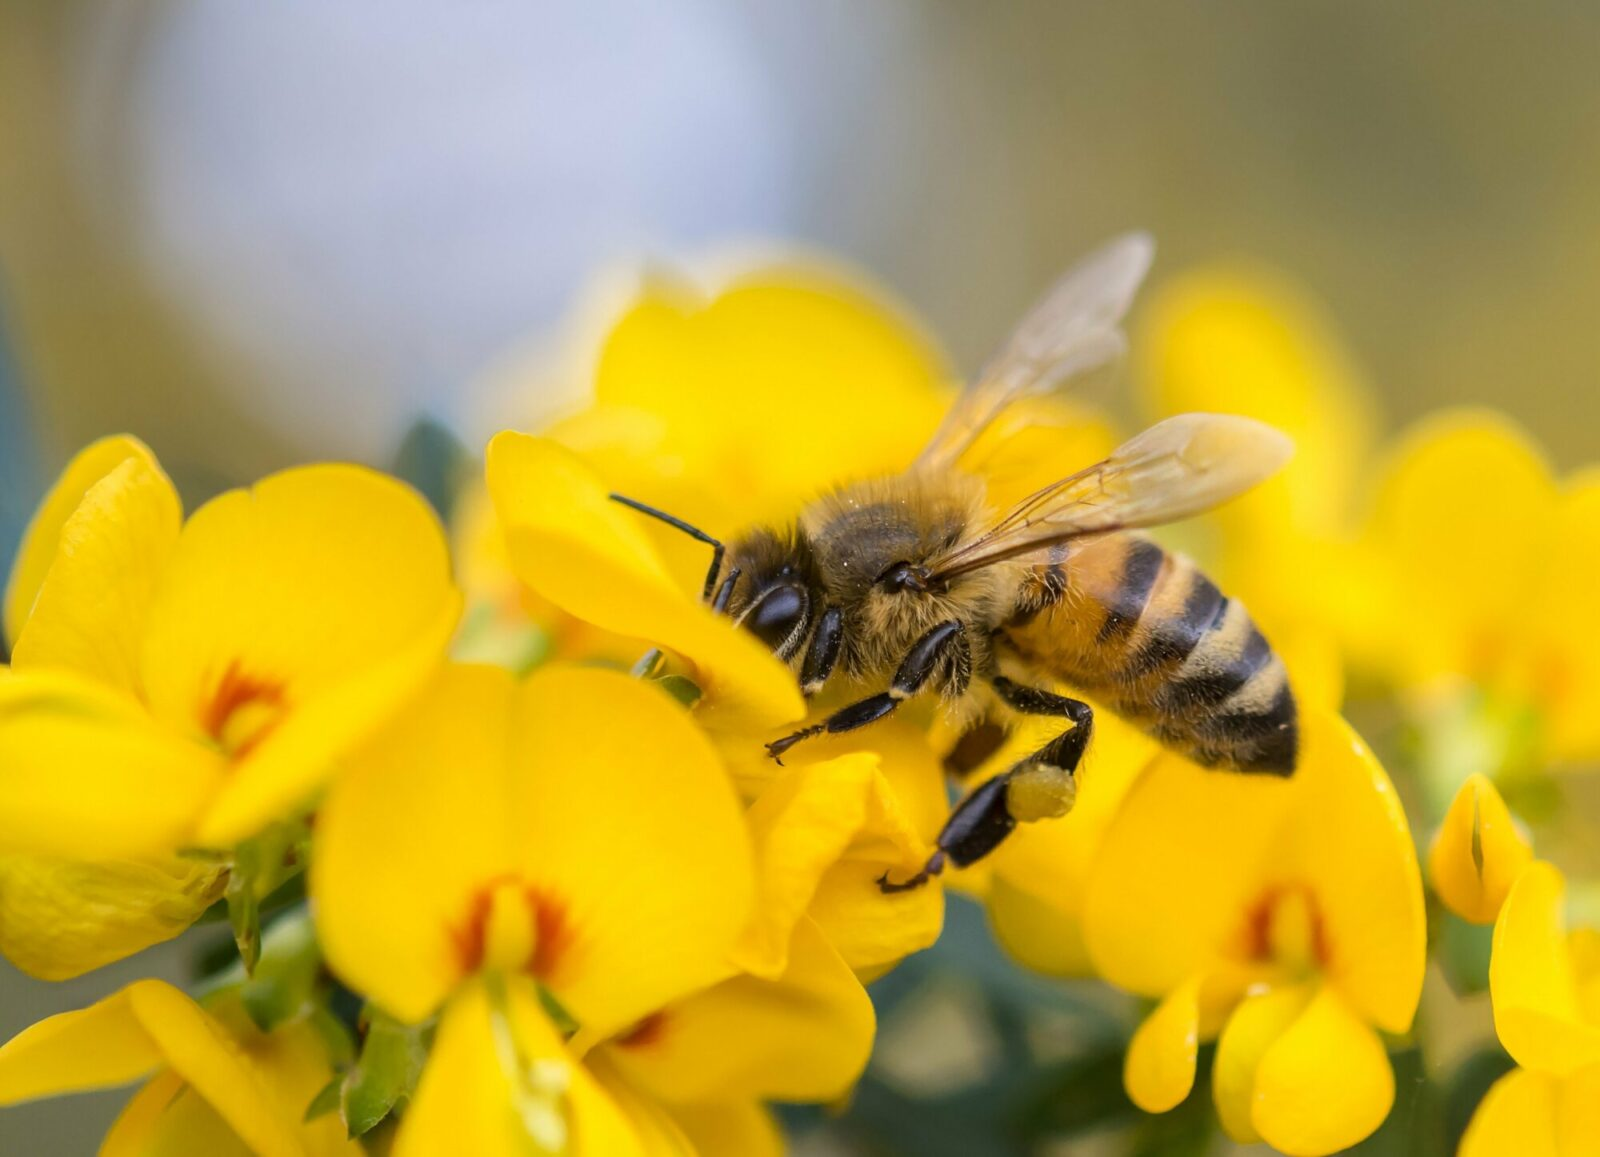 Virginia city is now officially a 'Bee City'